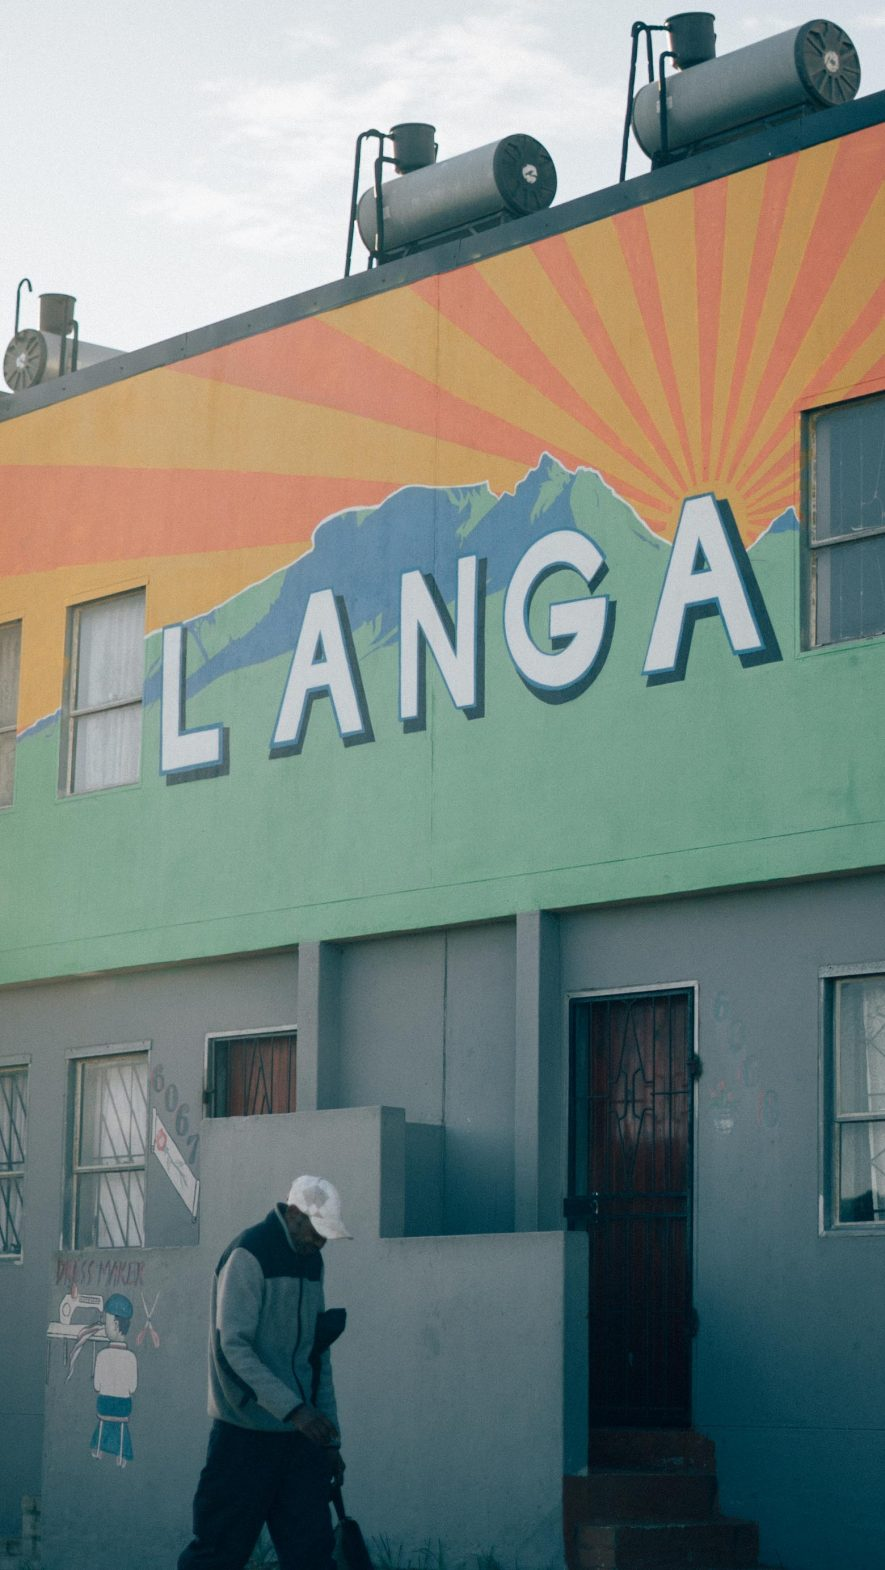 A wall with the township name of Langa, Cape Town.